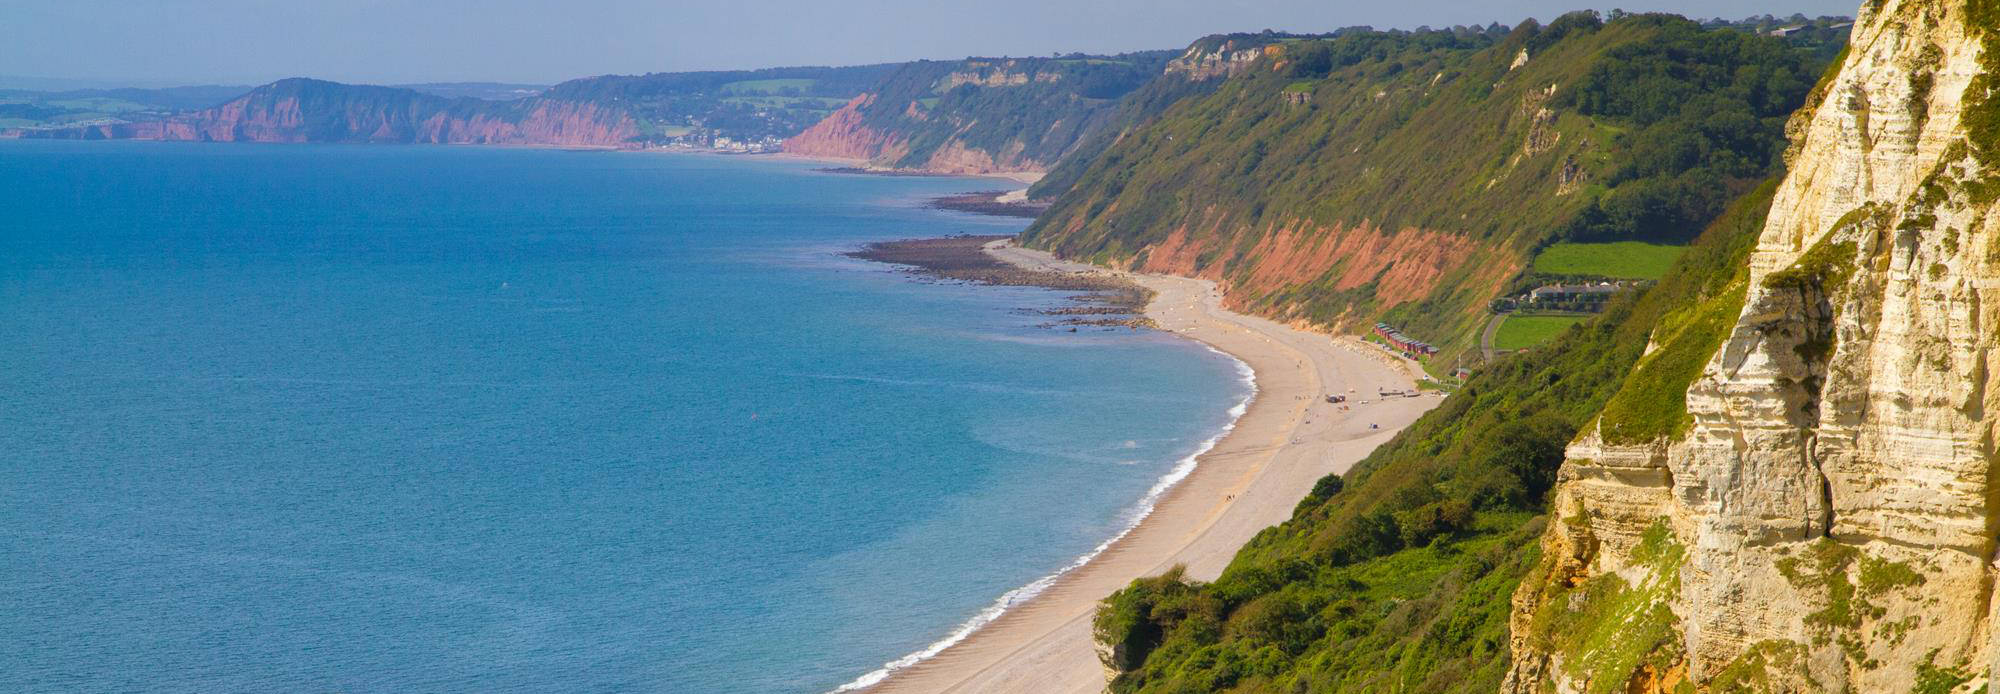 Branscombe beach and Devon